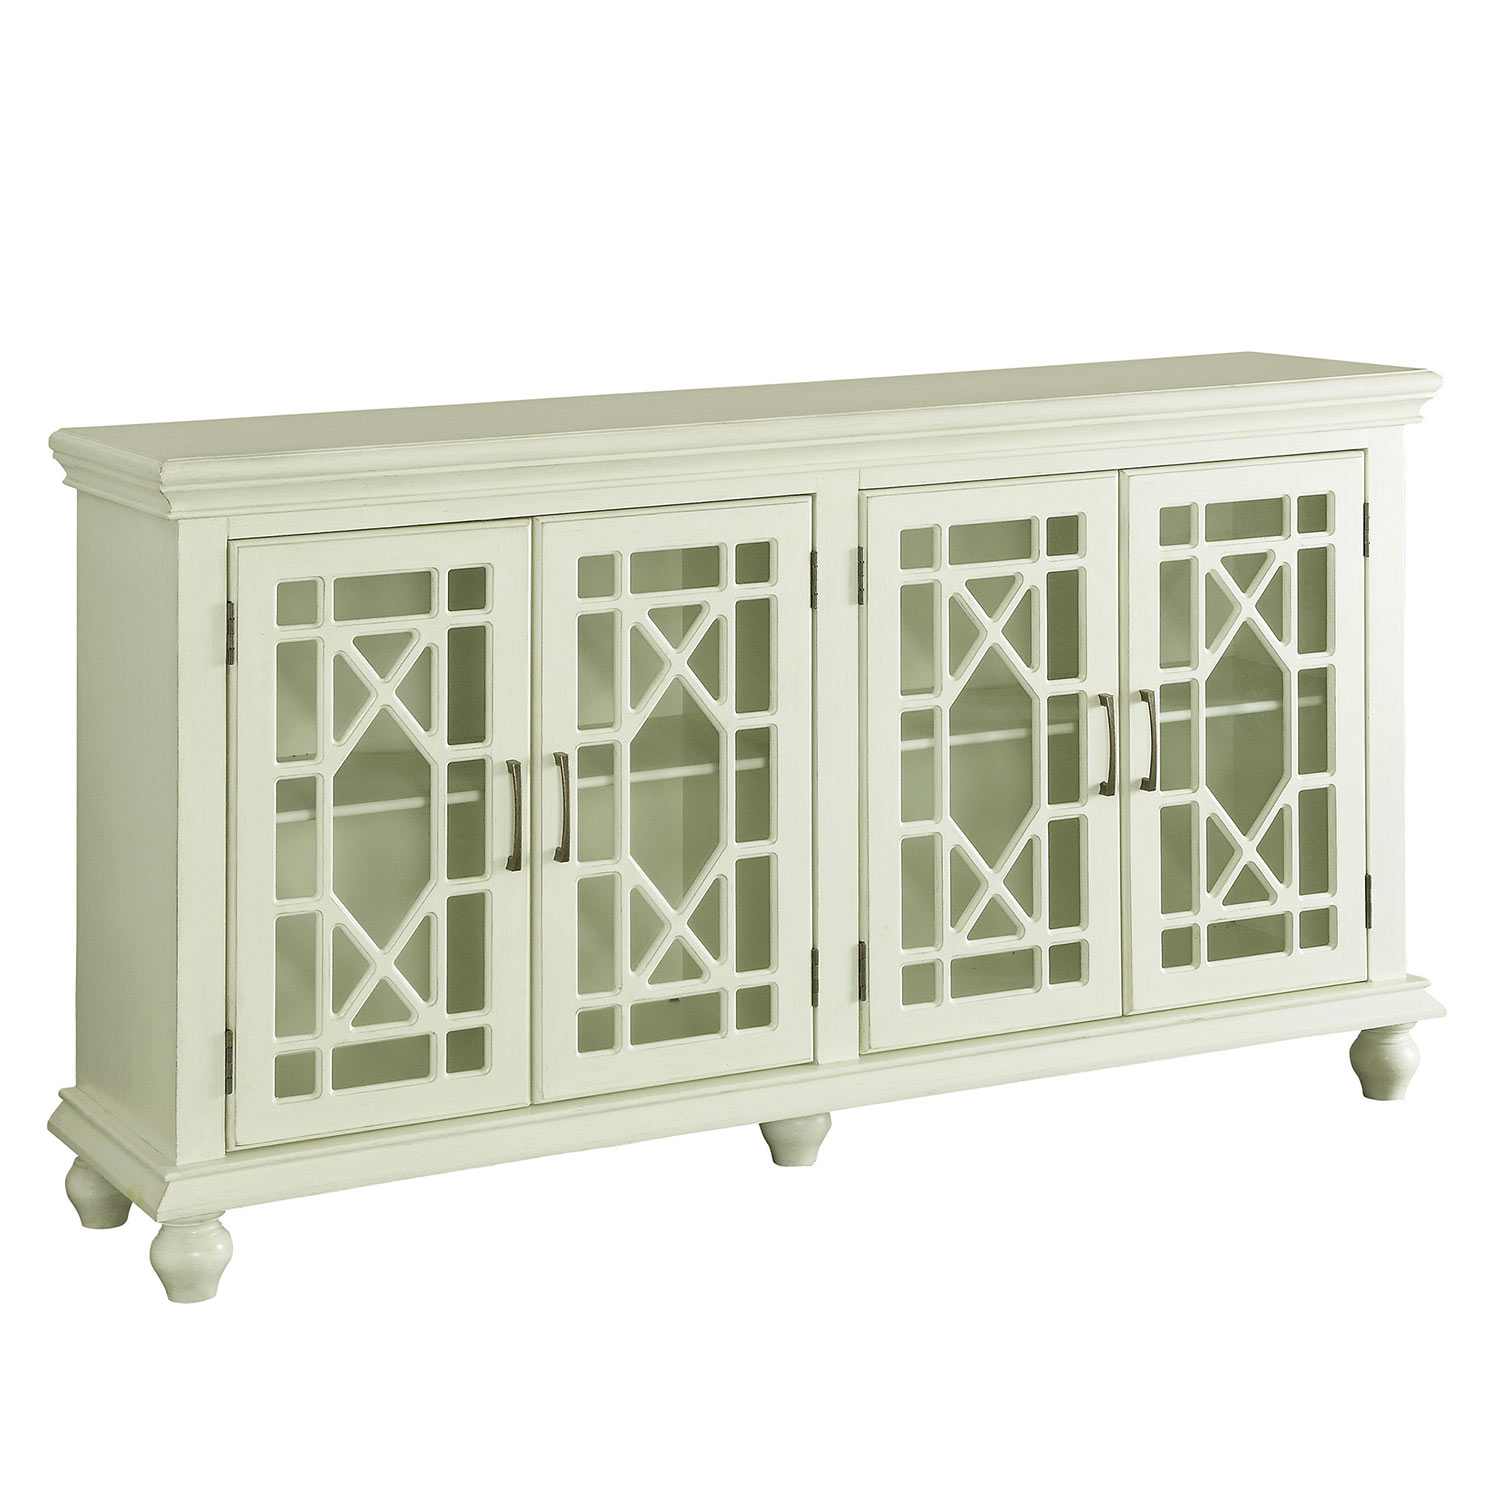 Coaster 950638 Accent Cabinet - Antique White